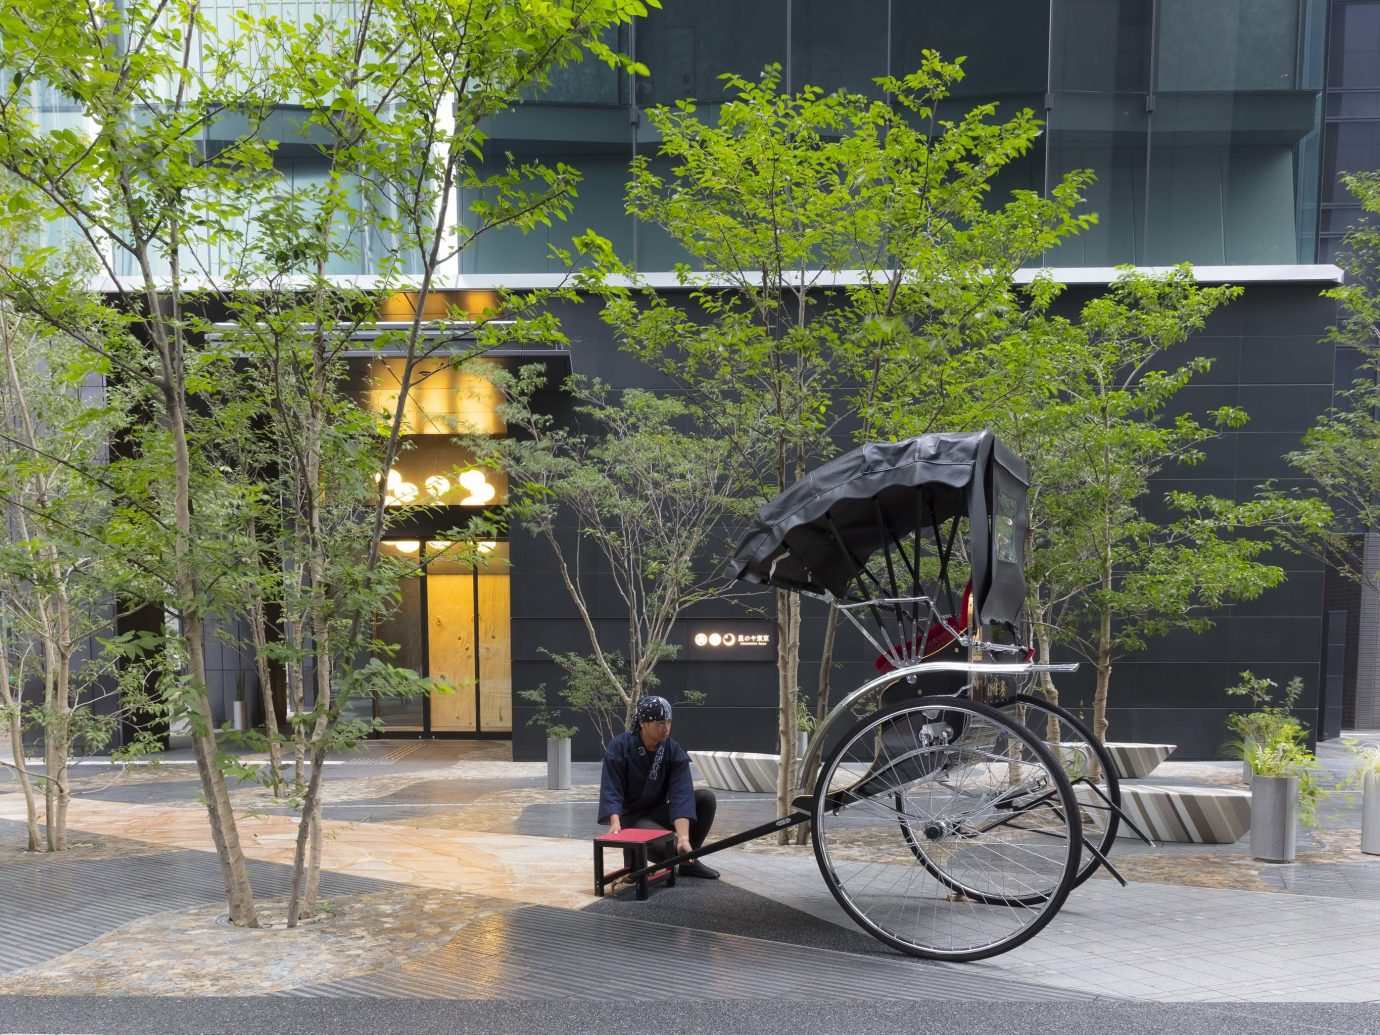 Trip Ideas tree outdoor bicycle vehicle City rolling stock